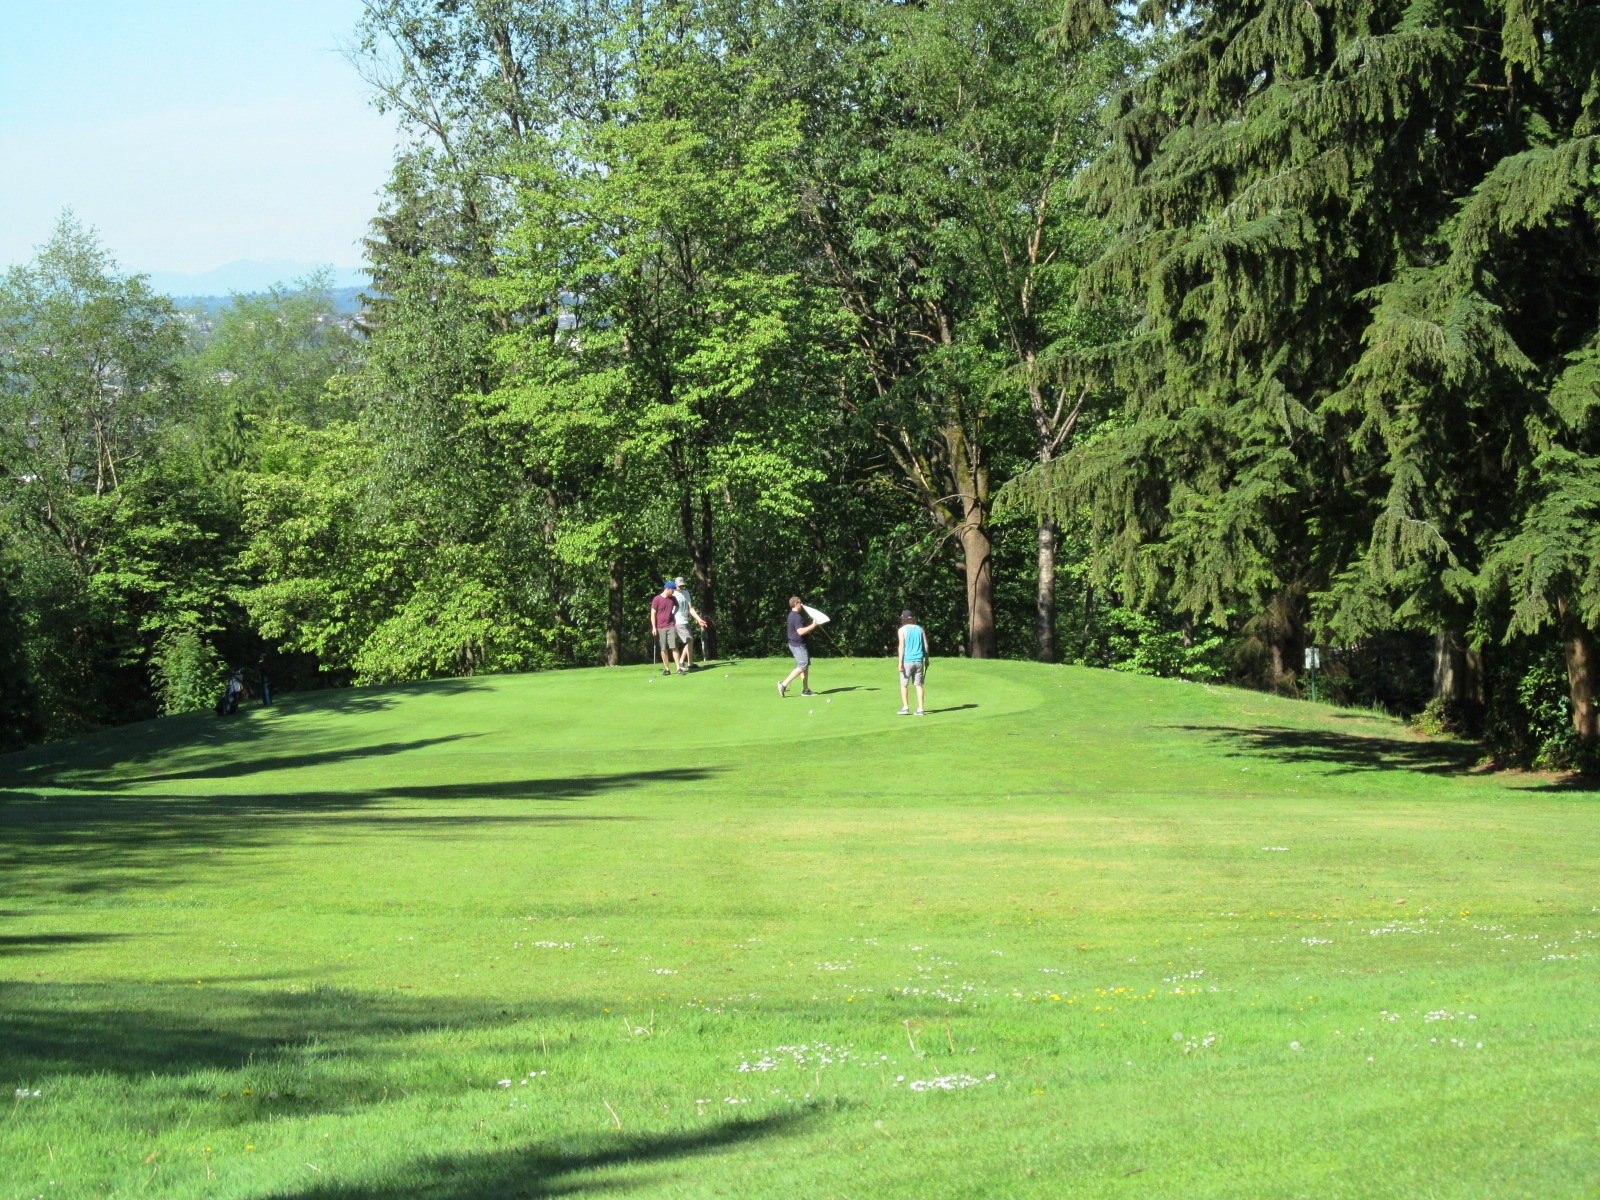 Kensington Park Pitch and Putt Specials